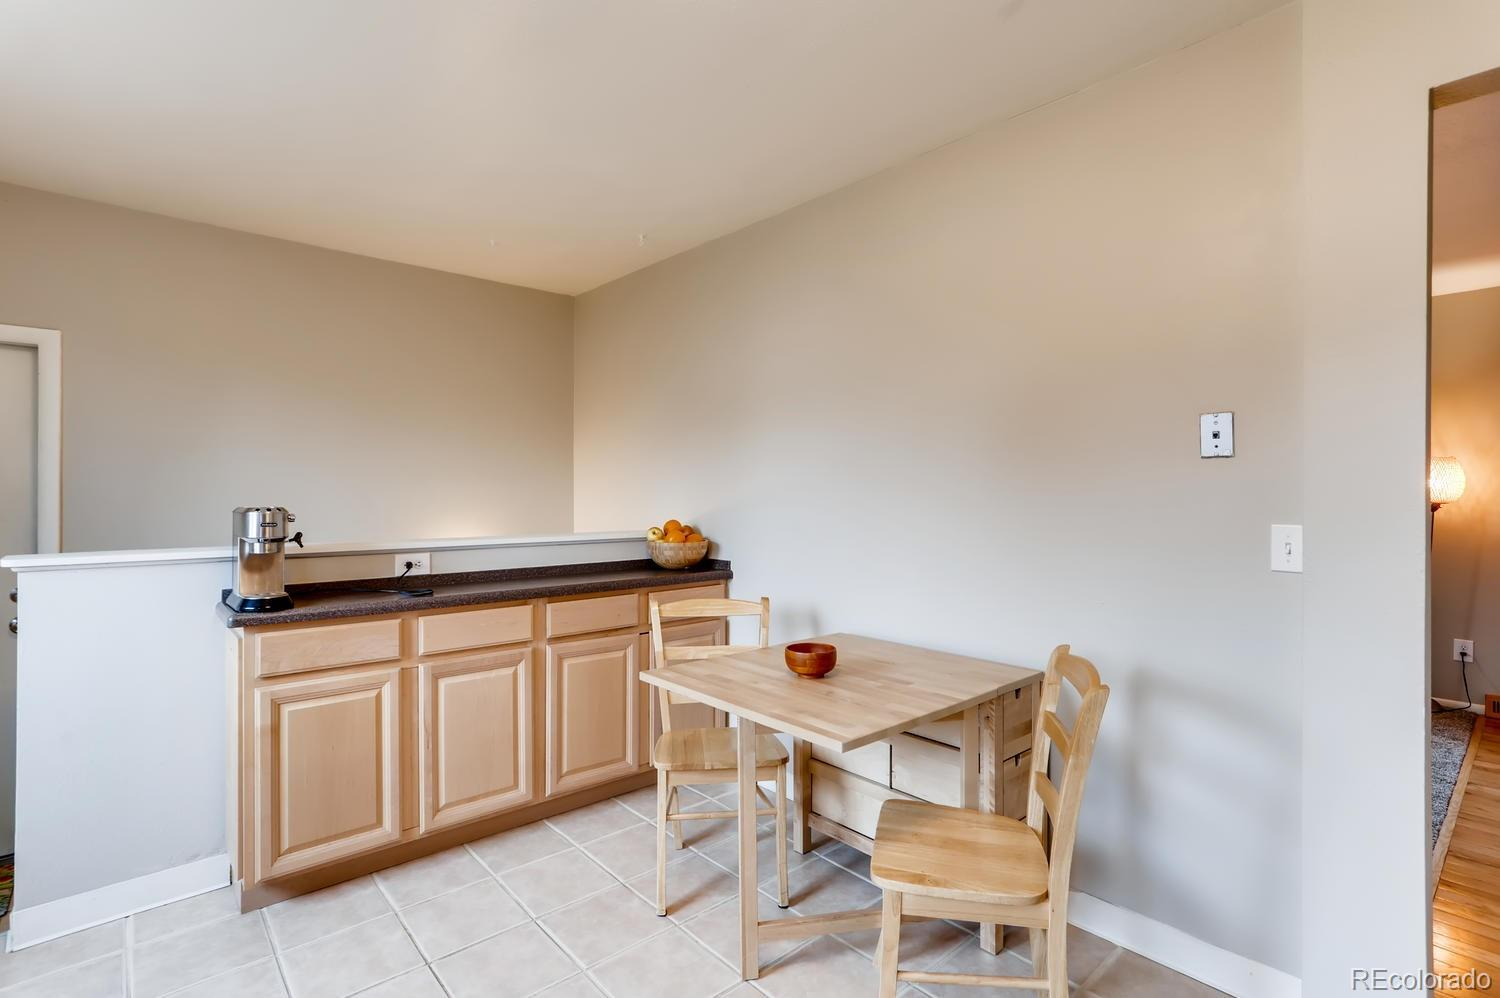 MLS# 6804031 - 9 - 10912 W 107th Place, Westminster, CO 80021